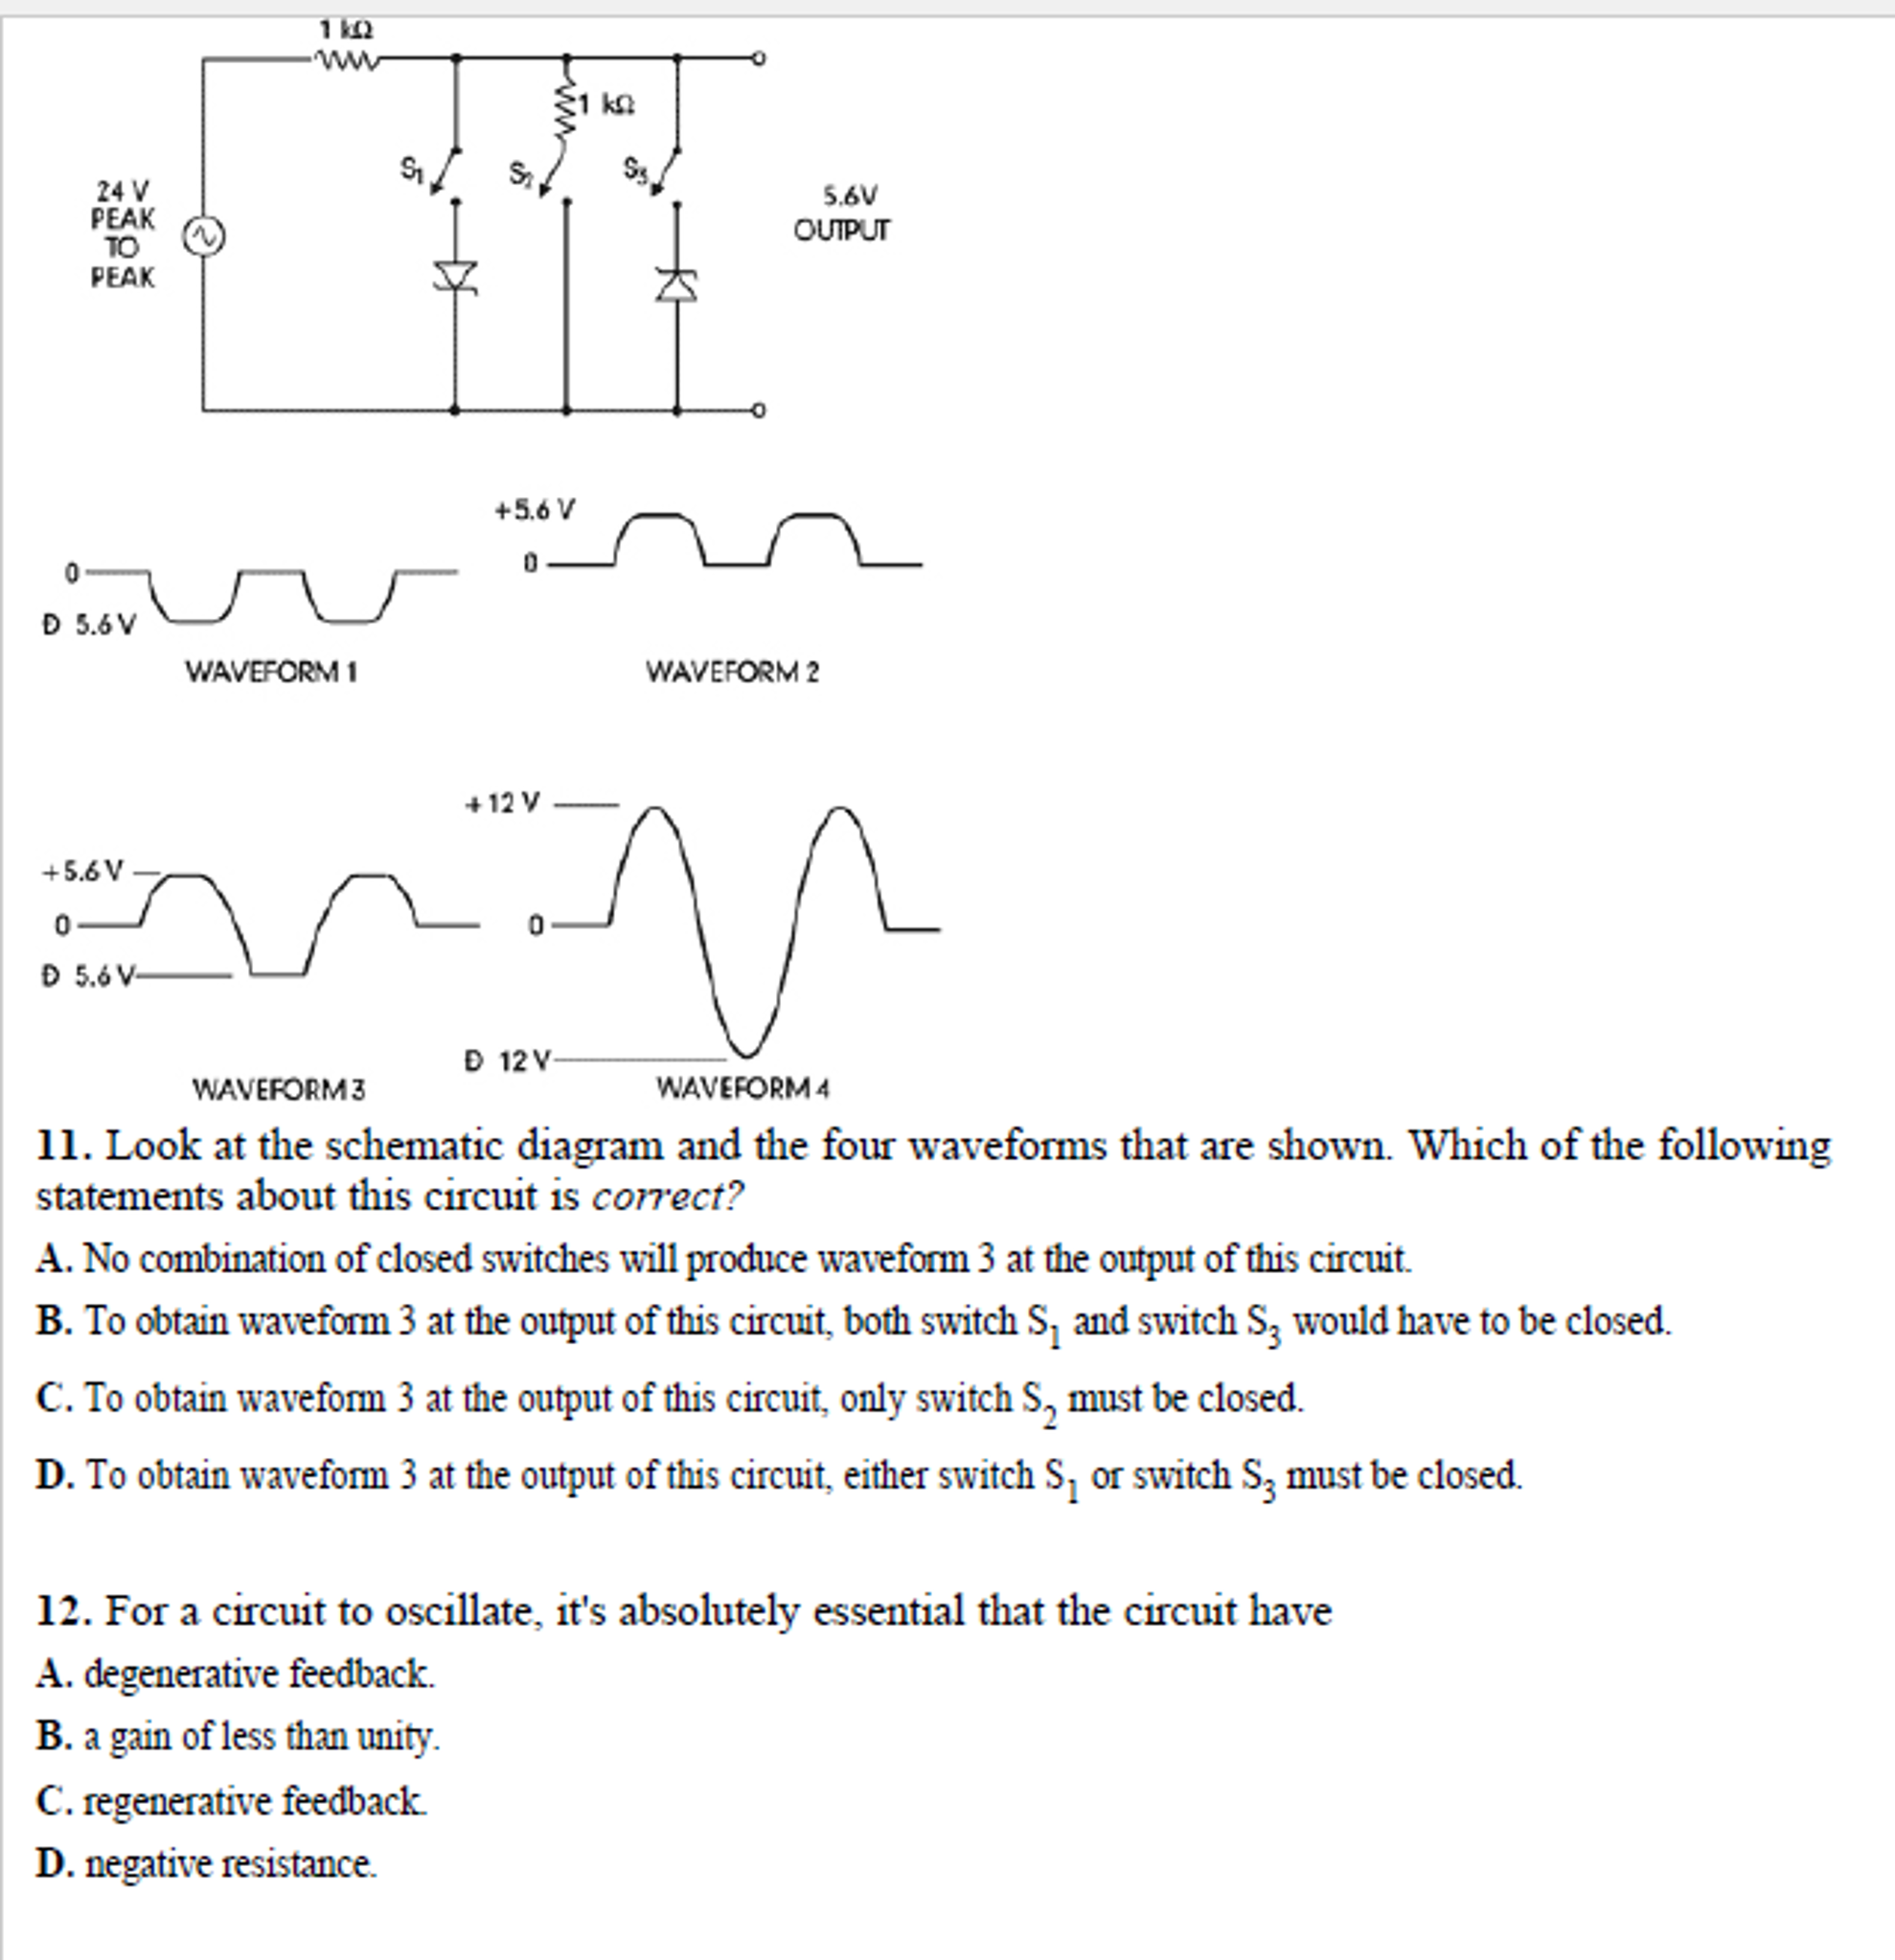 hight resolution of see more show transcribed image text 30 v power supply 25 v 207 v 5 r4 20 v dy 8 in the circuit shown an electronics technician measures the output